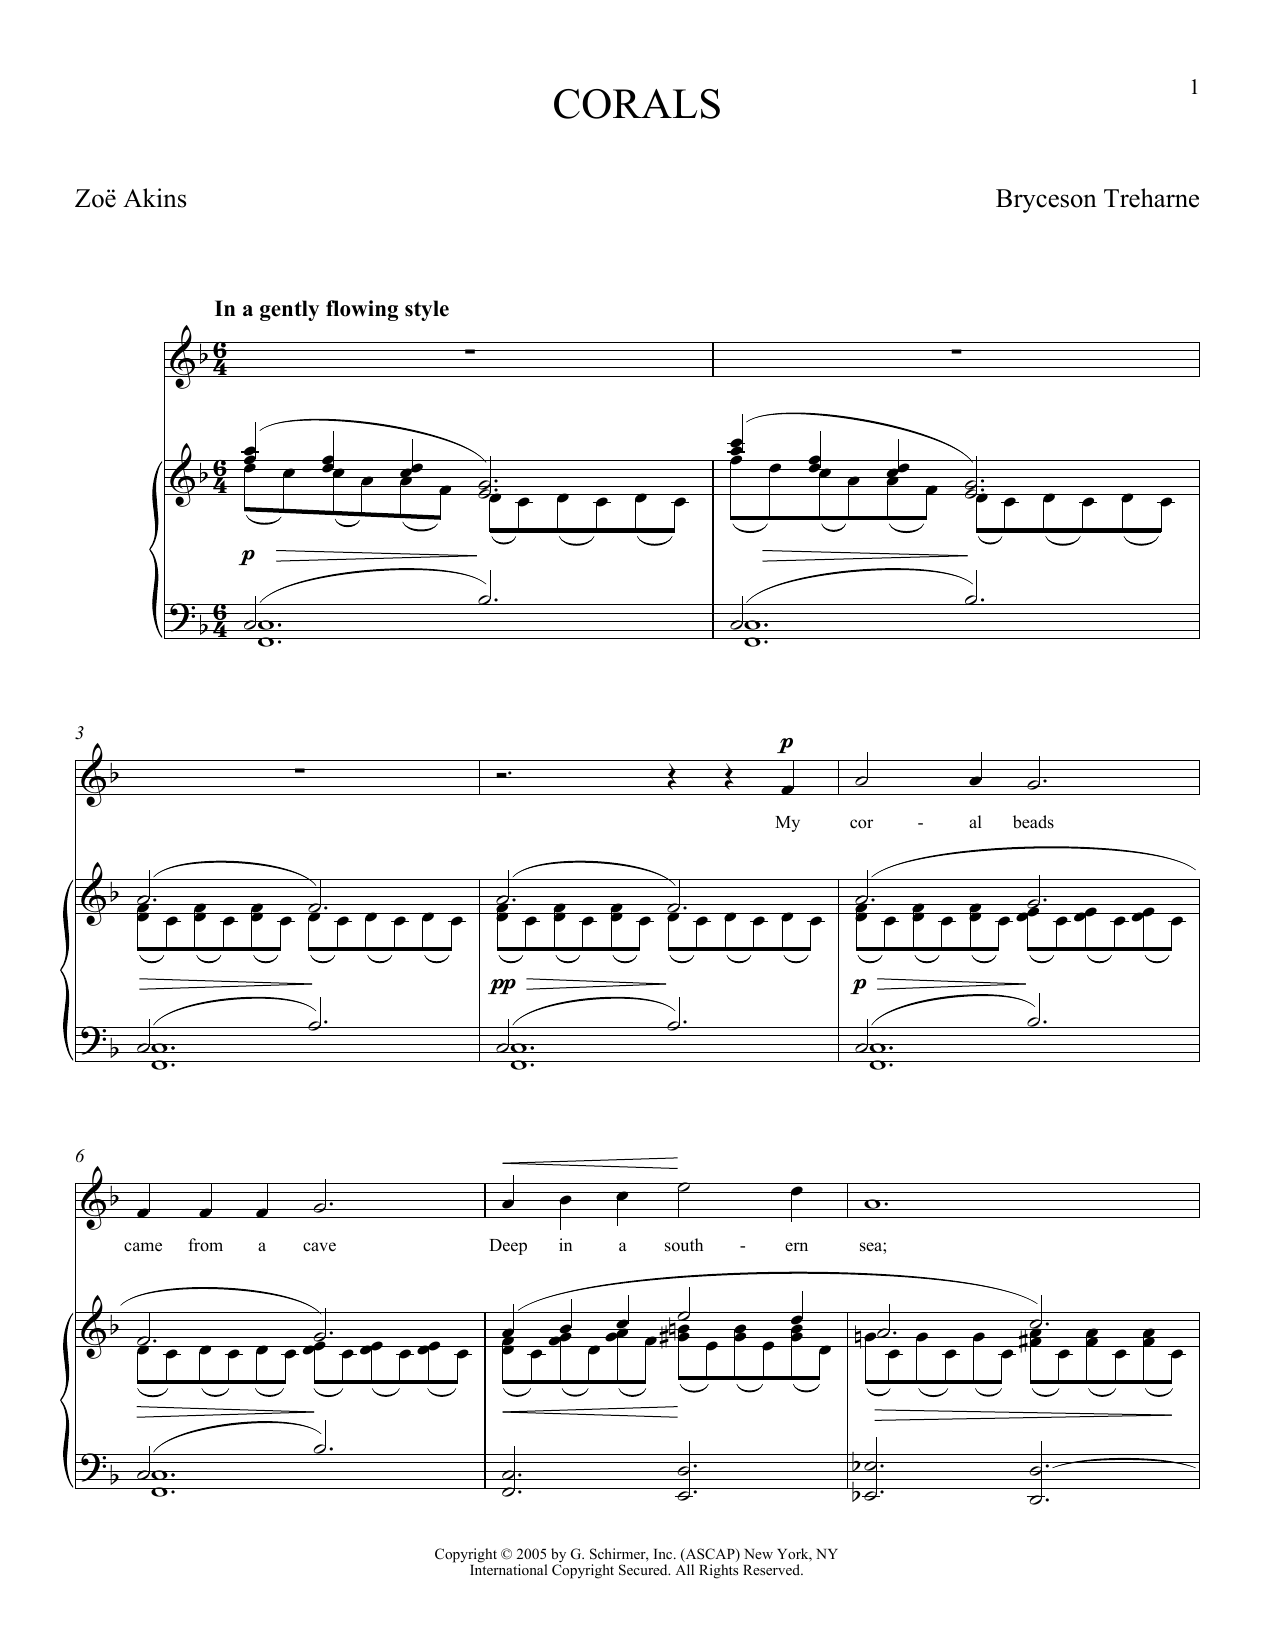 Bryceson Treharne Corals sheet music notes and chords. Download Printable PDF.